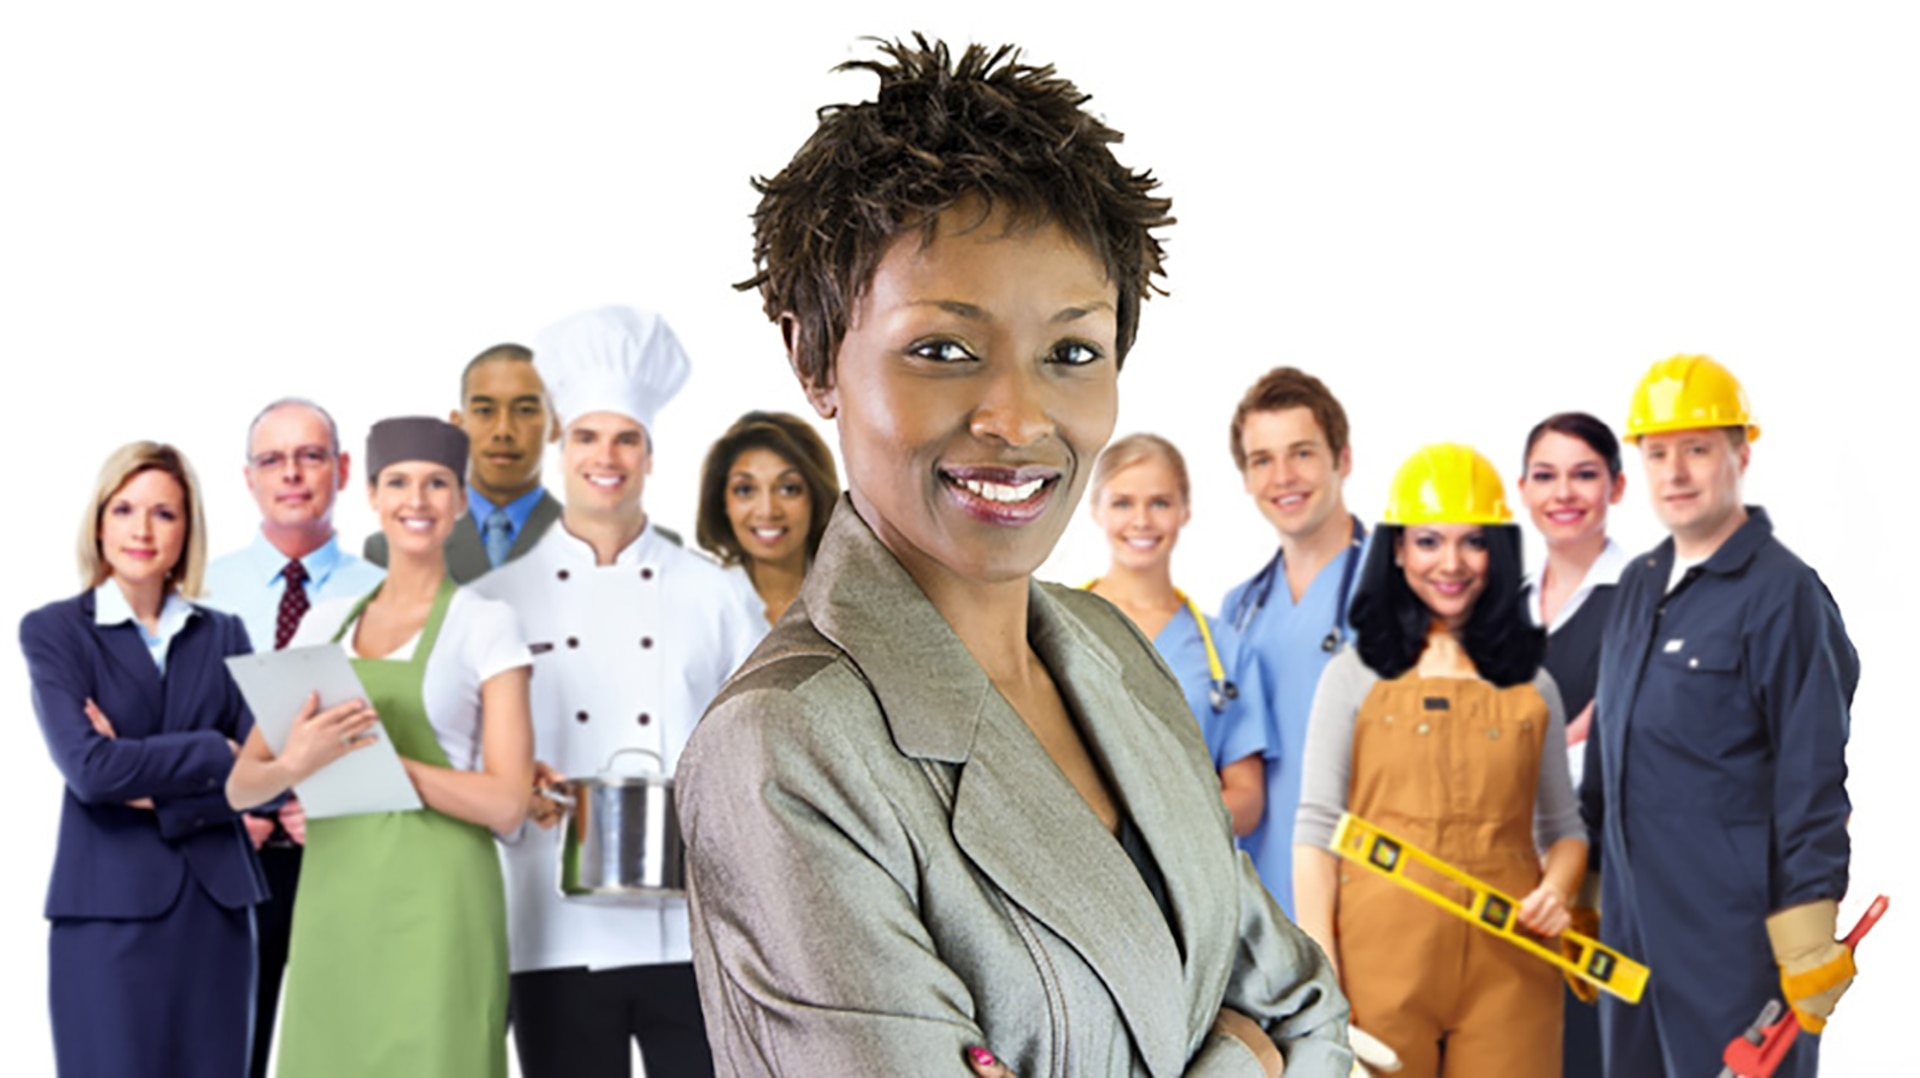 The Army's Family and Morale, Welfare and Recreation program has many resources to help Army spouses with employment and entrepreneur opportunities including the Employment Readiness Program.